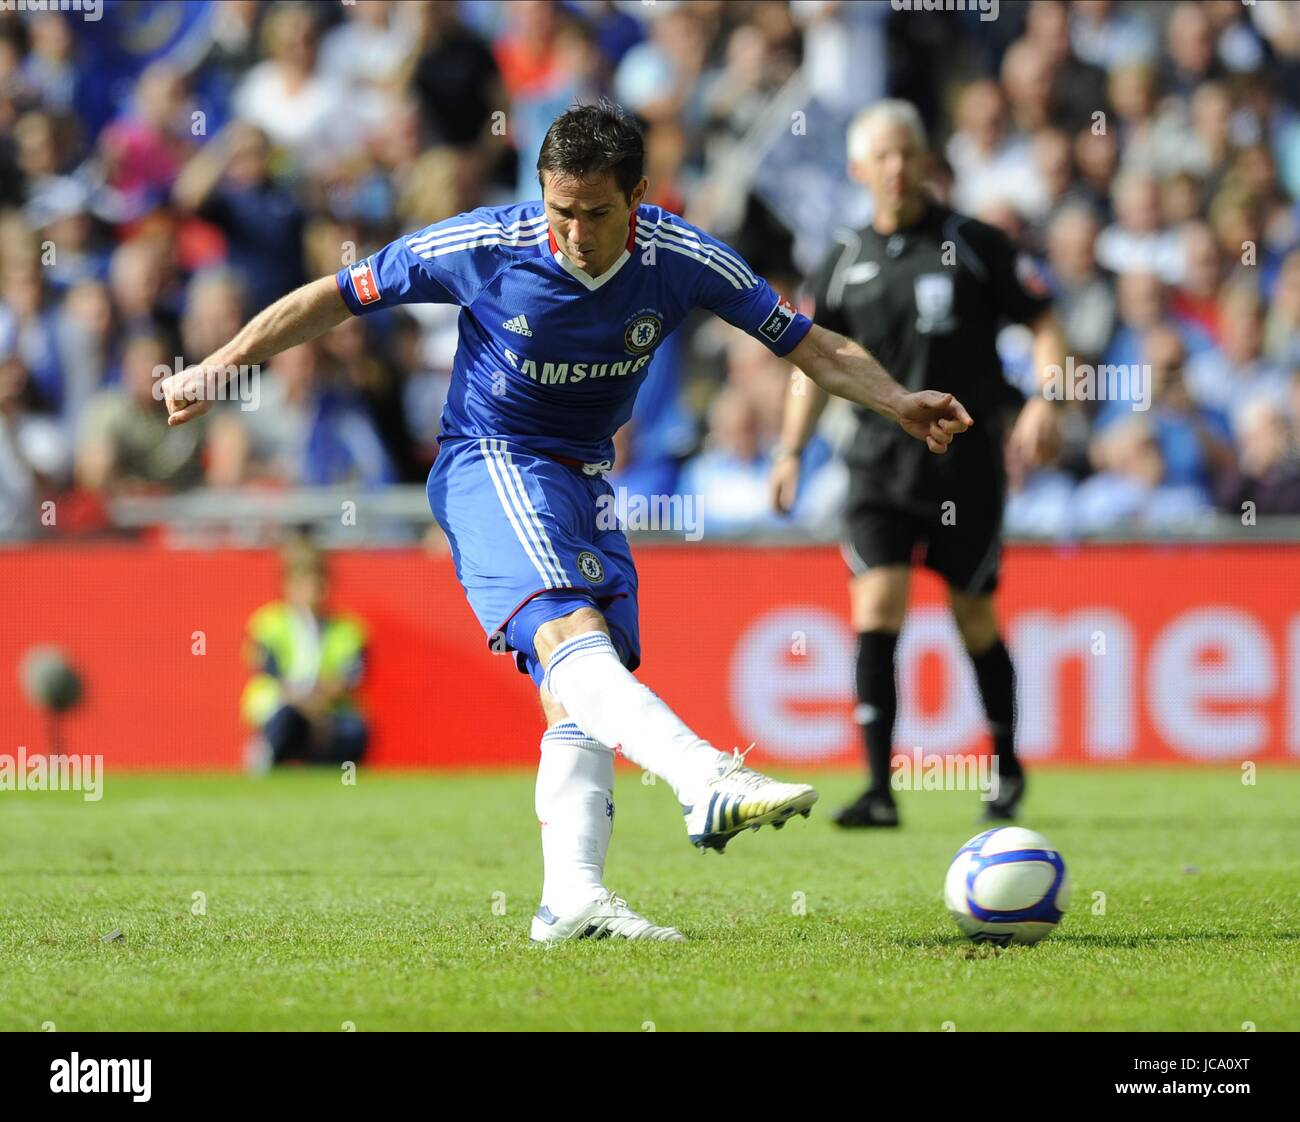 FRANK LAMPARD TAKES PENALTY CHELSEA FC WEMBLEY STADIUM LONDON ENGLAND 15 May 2010 - Stock Image